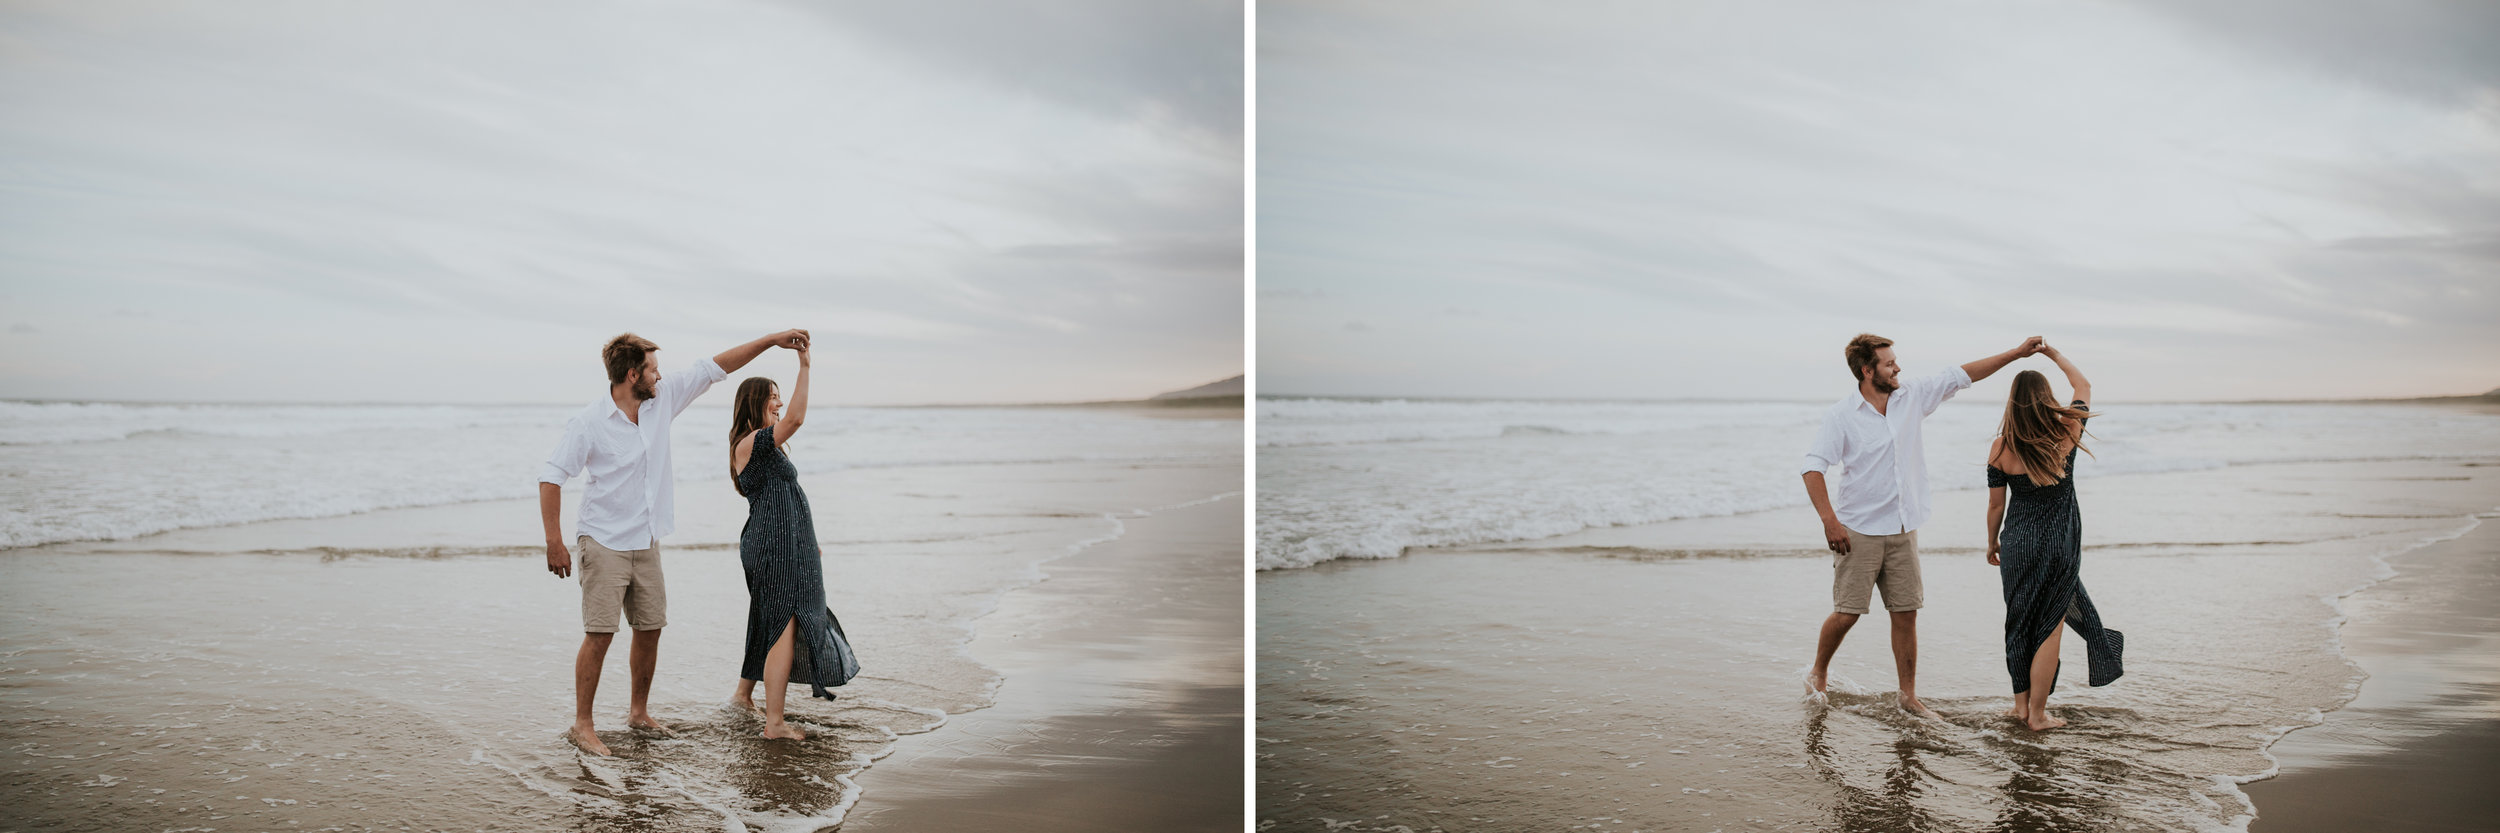 AMY+ANDREW+SHOALHAVEN+HEADS+BEACH+MATERNITY+SESSION+RELAXED-4.jpg